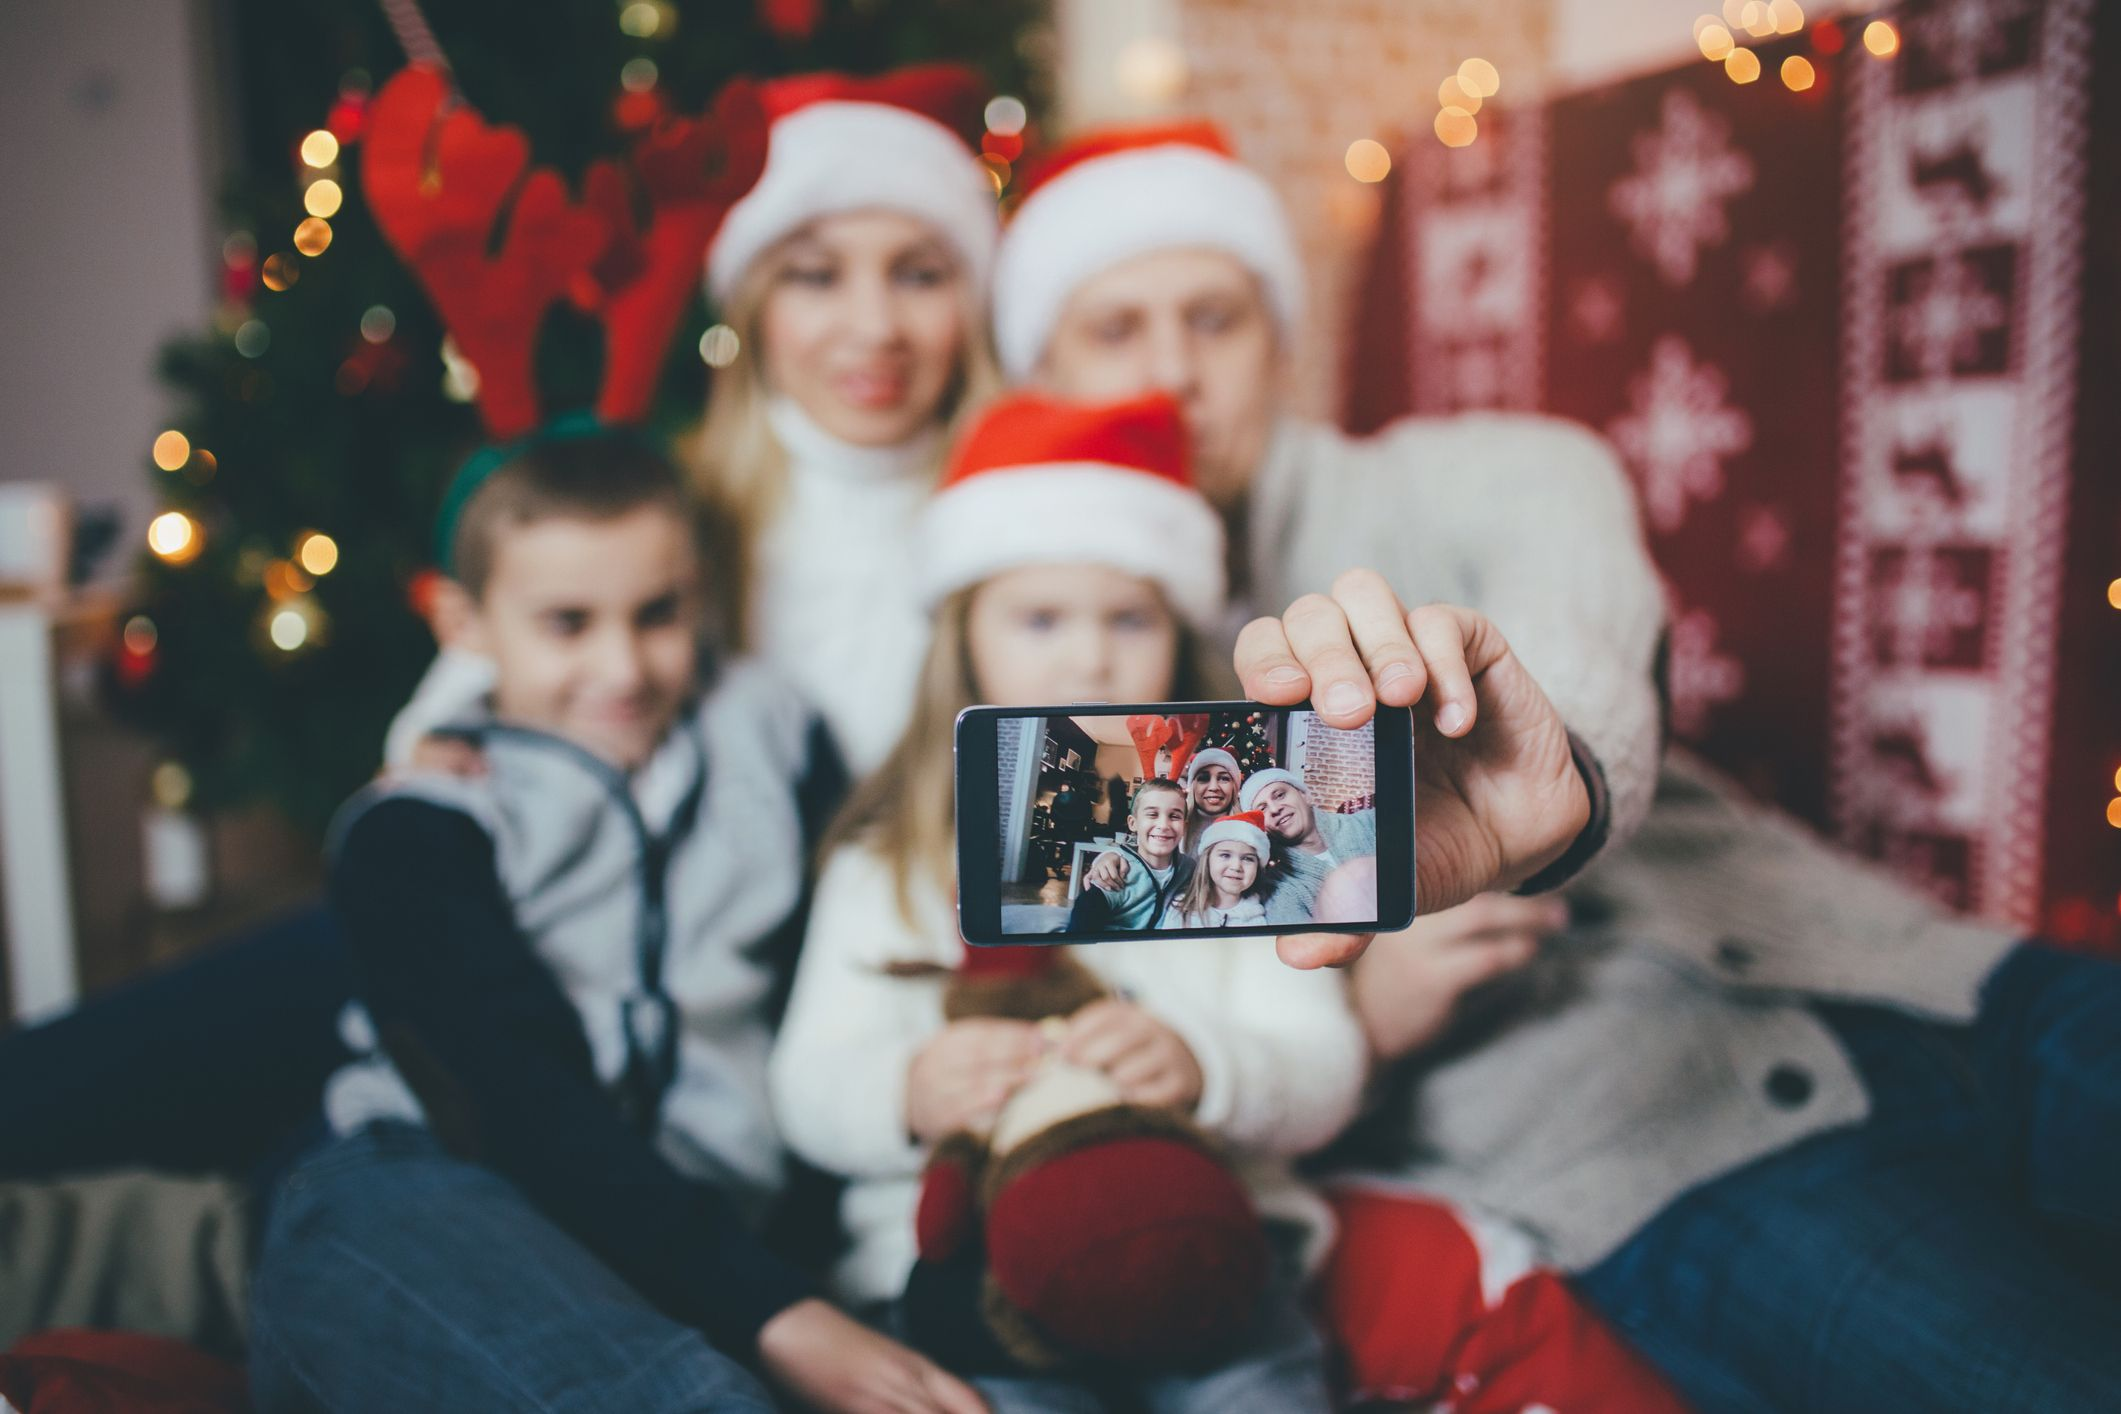 Christmas Captions.88 Best Christmas Captions For Instagram 2019 Cute And